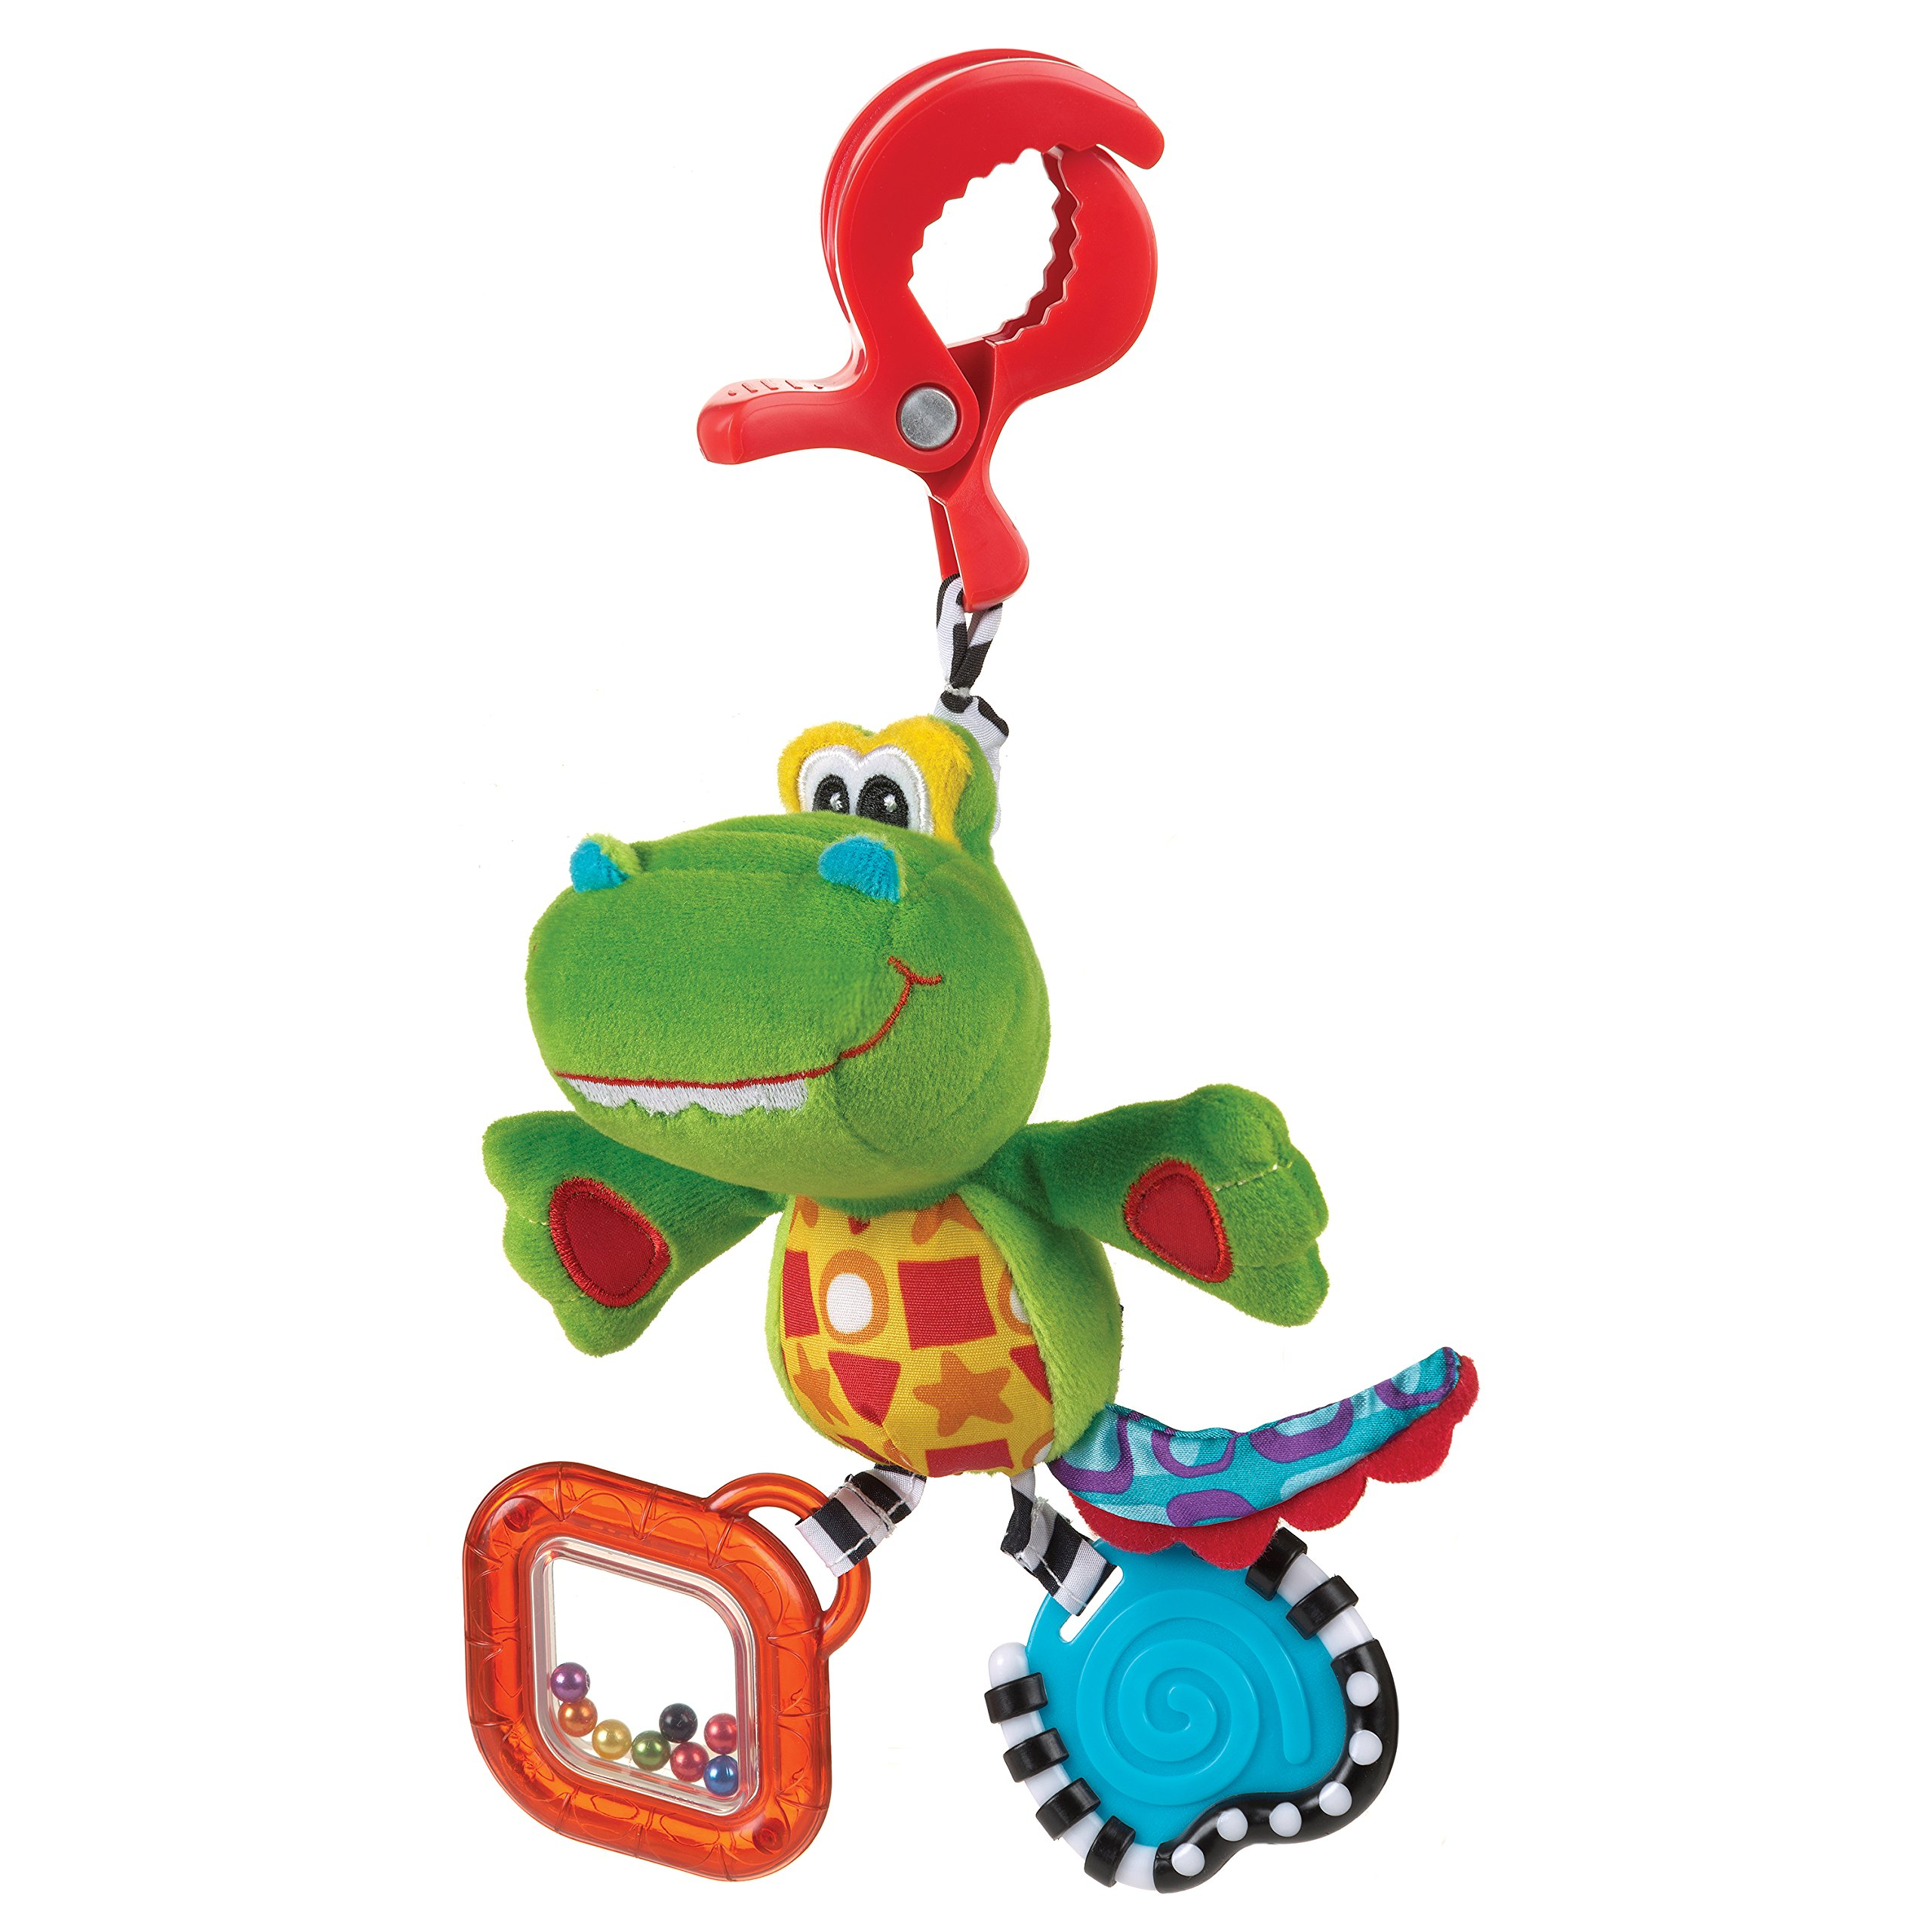 Playgro 0182855 Dingly Dangly Snappy the Alligator for Baby